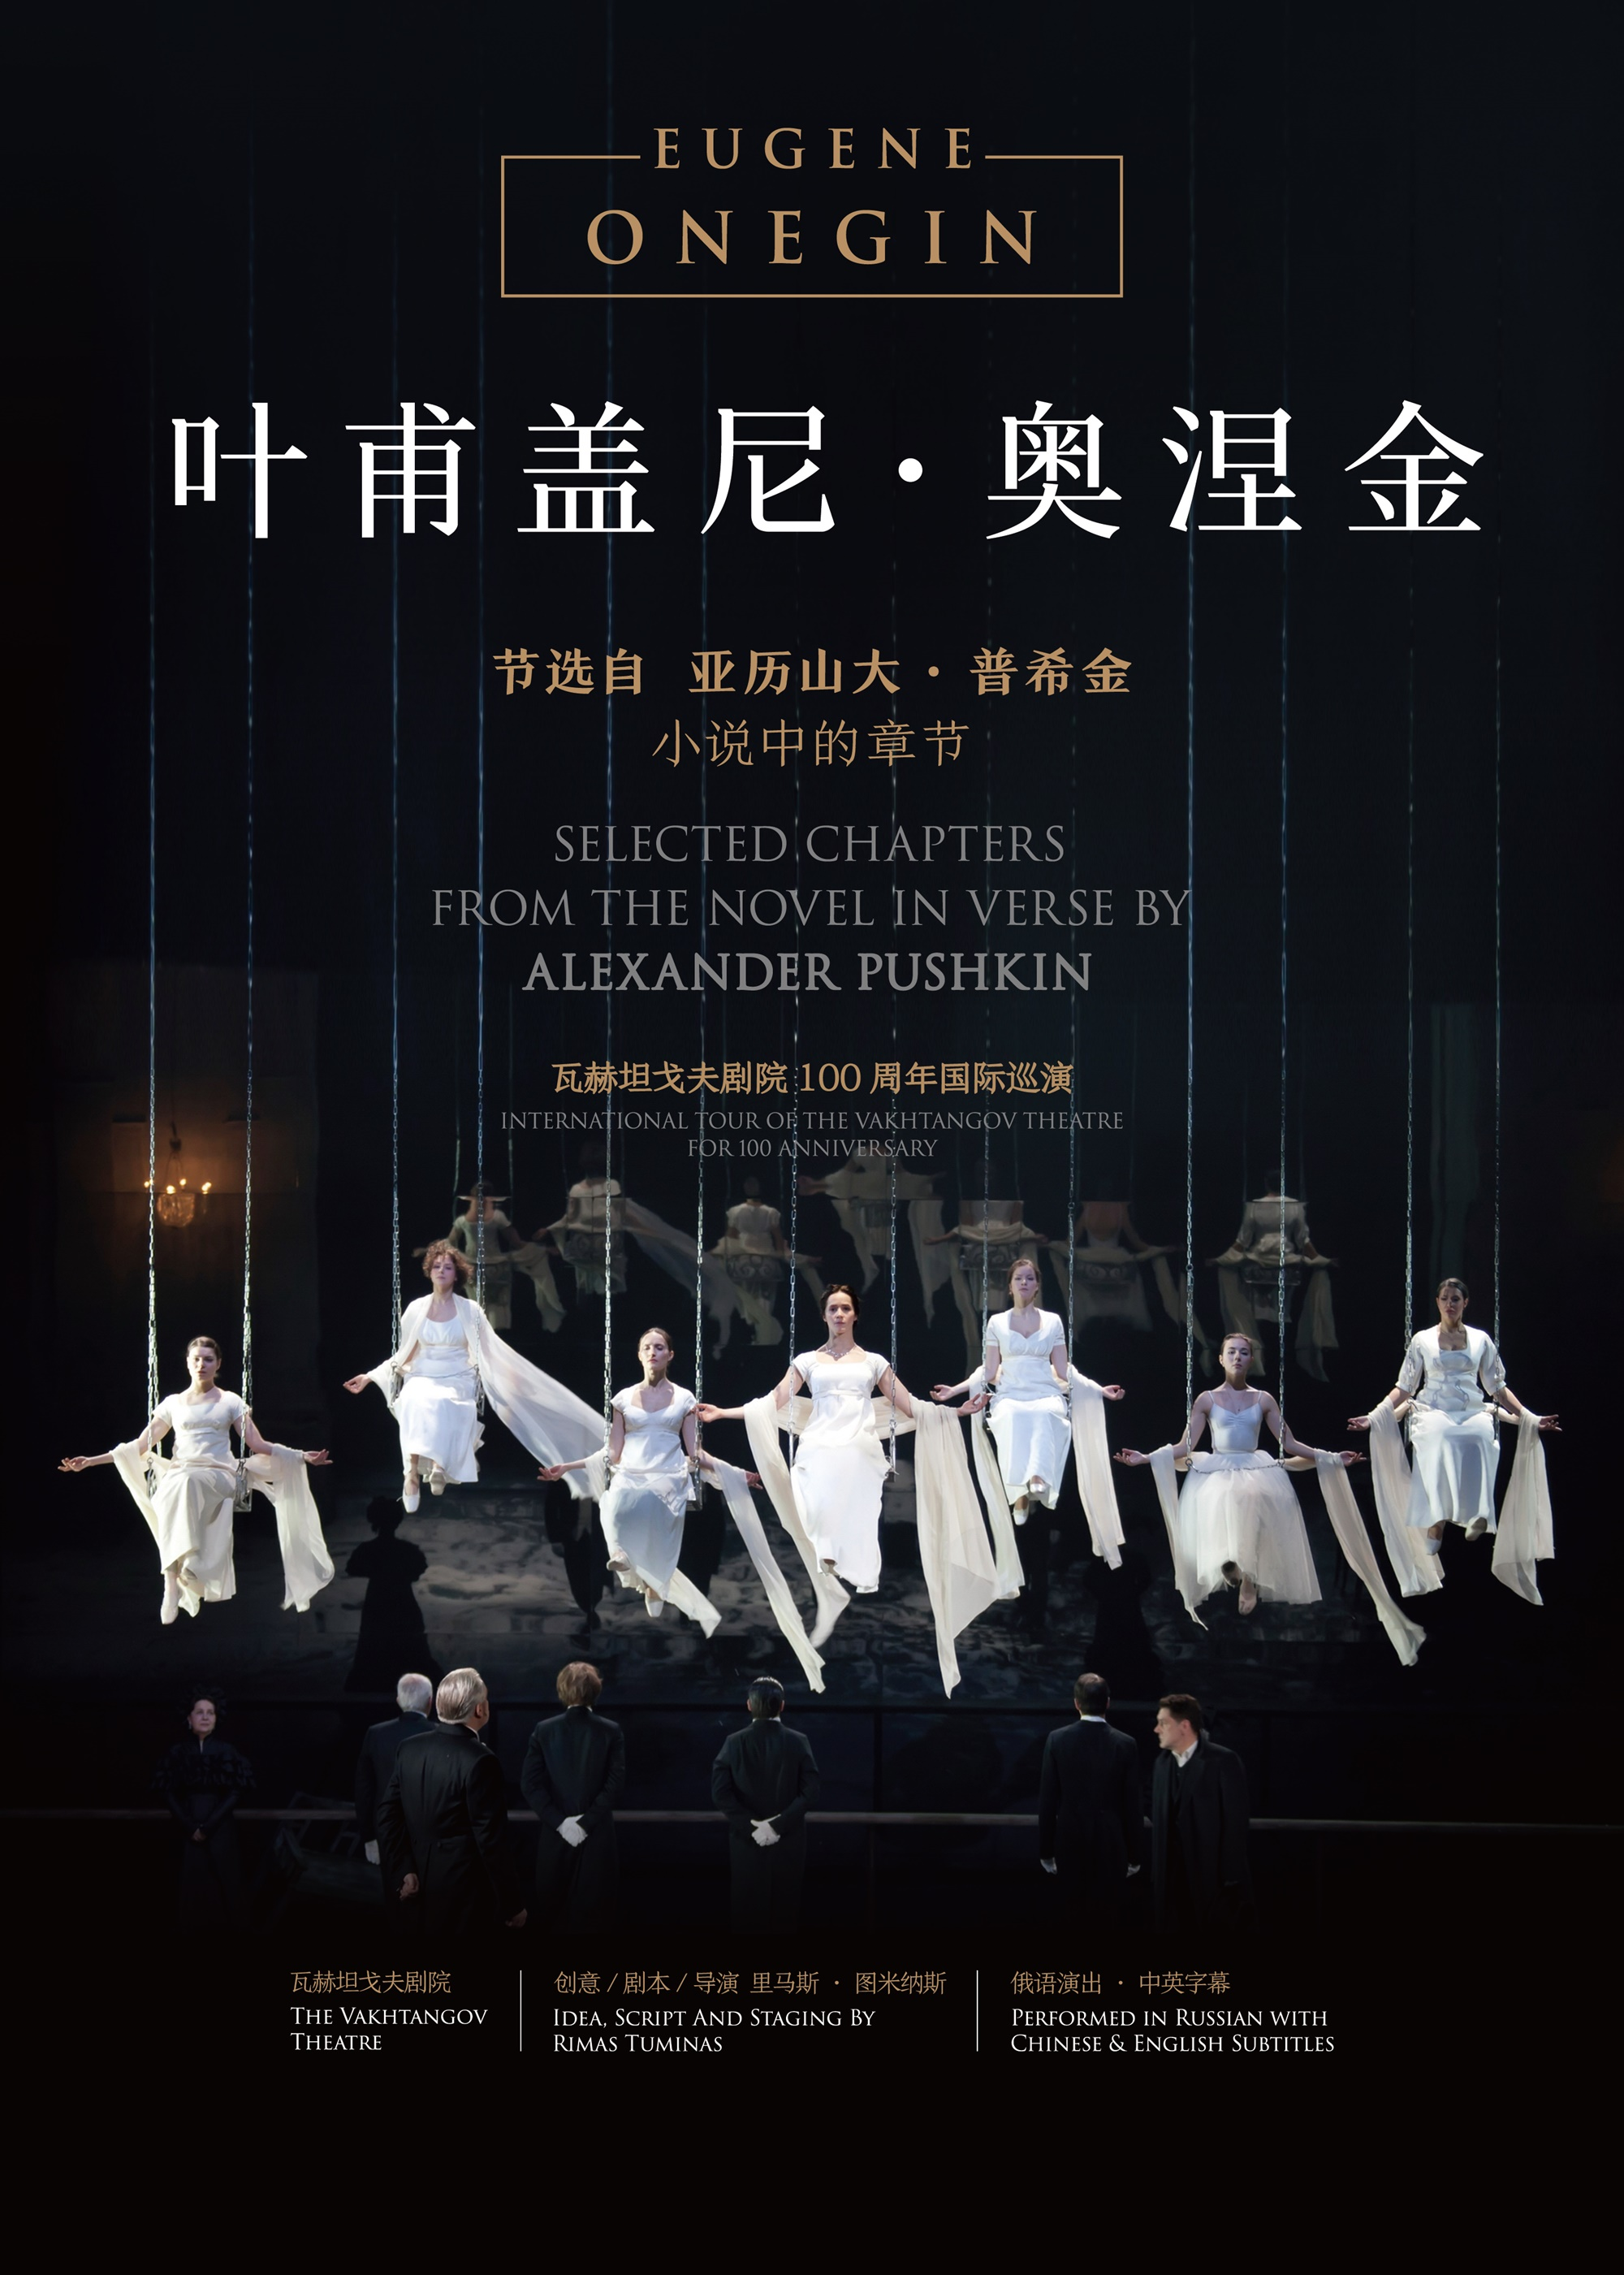 【The 9th Xi'an Theatre Festival    Unlimited】  Eugene Onegin (ЕВГЕНИЙ ОНЕГИН) by Theater Vakhtangov